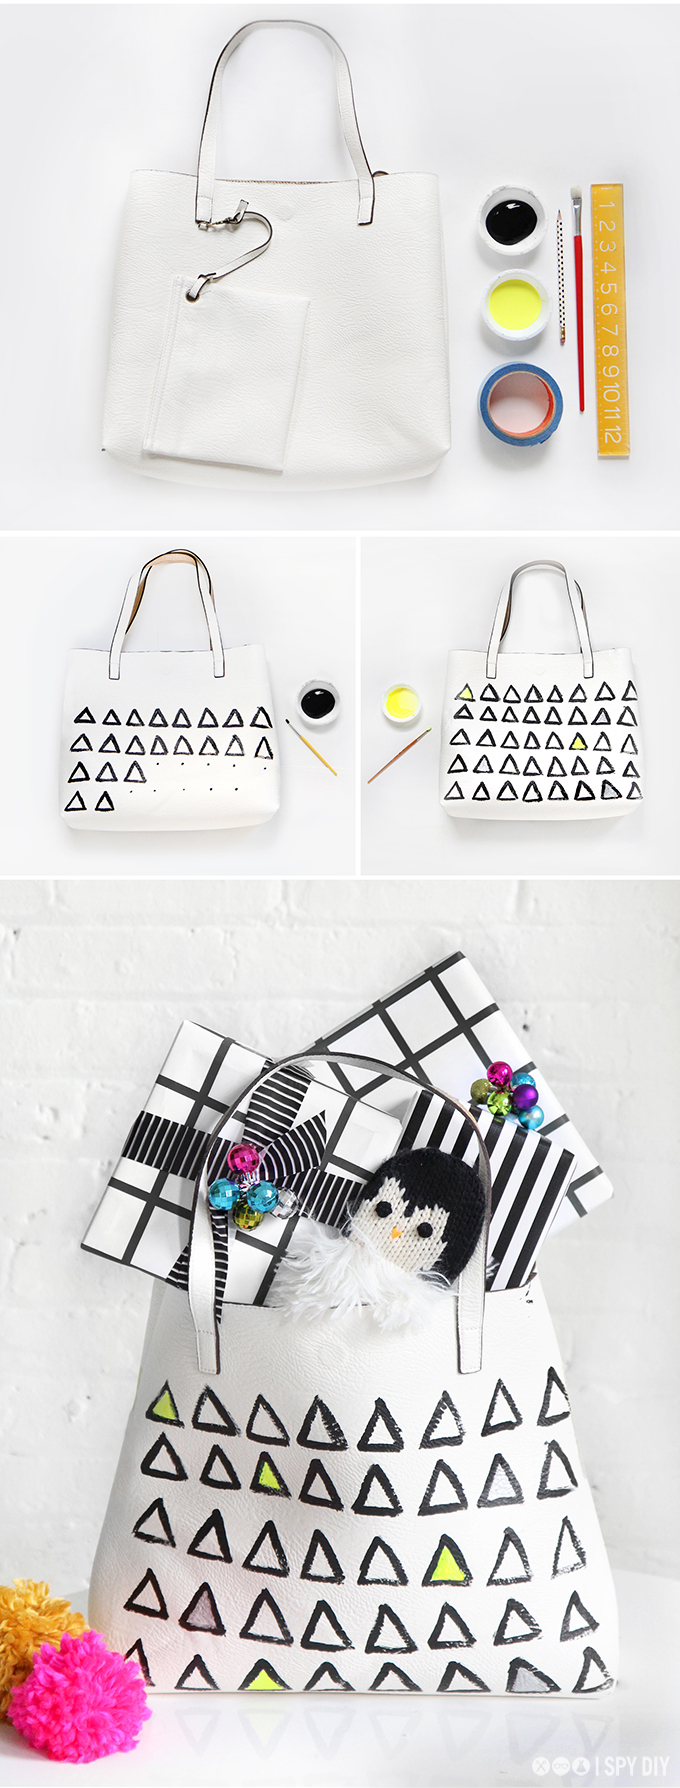 ispydiy_triangleleatherbag_steps